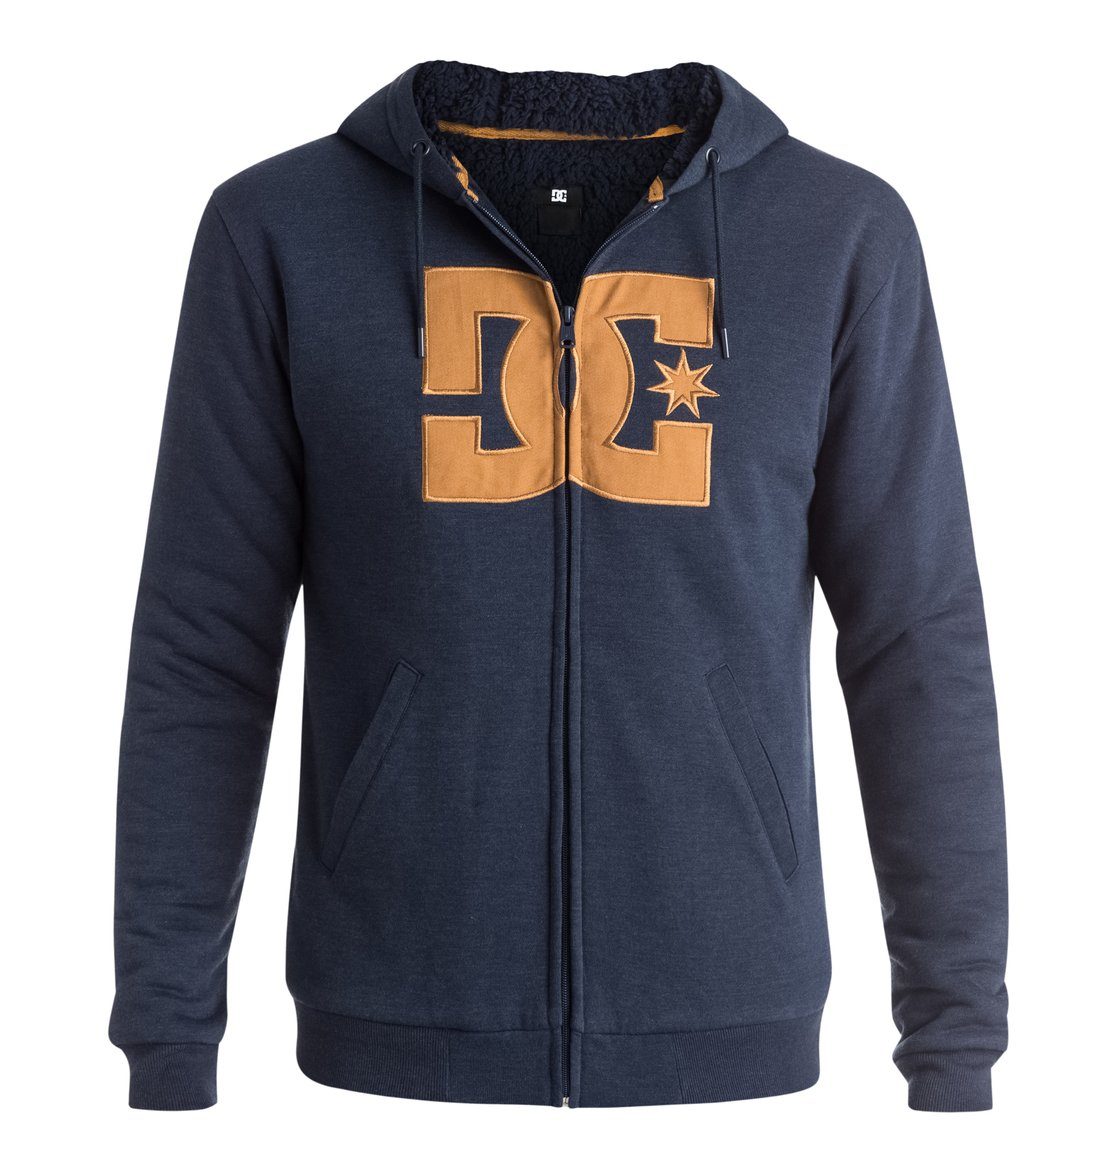 Rebel Star Sherpa - Dcshoes������� ���� Rebel Star Sherpa �� DC Shoes. <br>��������������: ��������� �� ����������������� �����, ����������� ������� ��������� �����, �������-���������� DC � ��������, ����� � ��������� DC. <br>������: 60% ������, 40% ���������.<br>